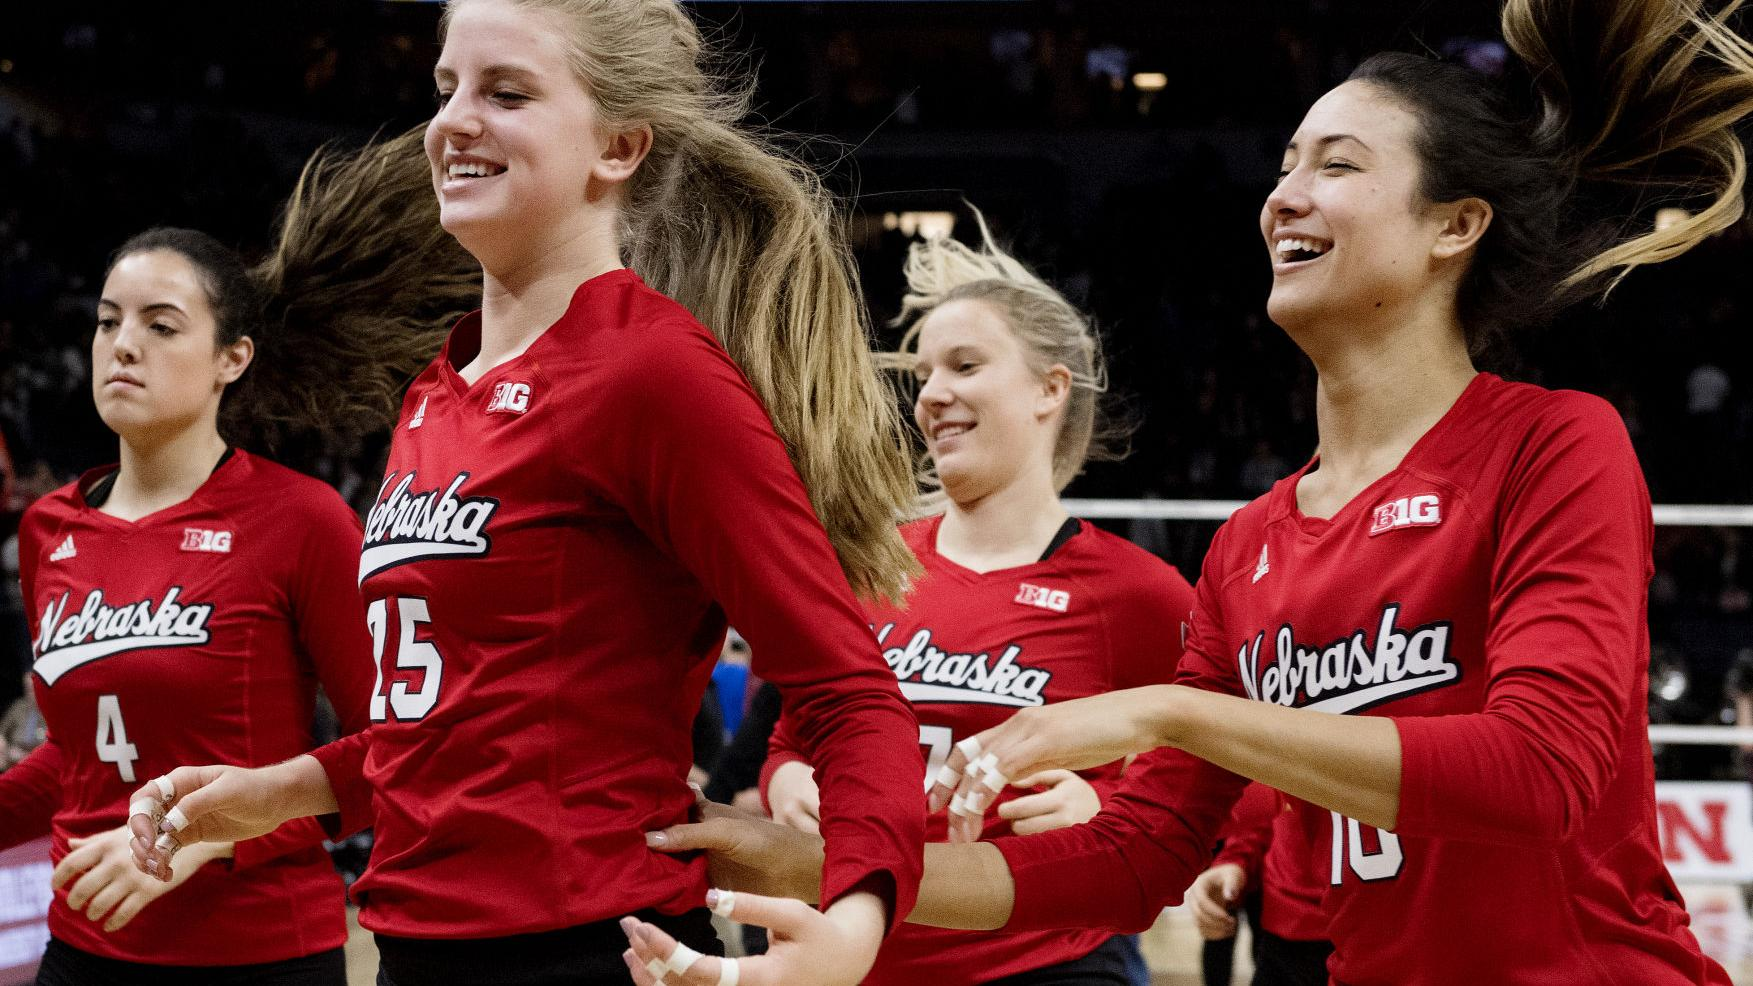 Nebraska volleyball vs. Stanford in the National Championship: Follow along for updates, coverage